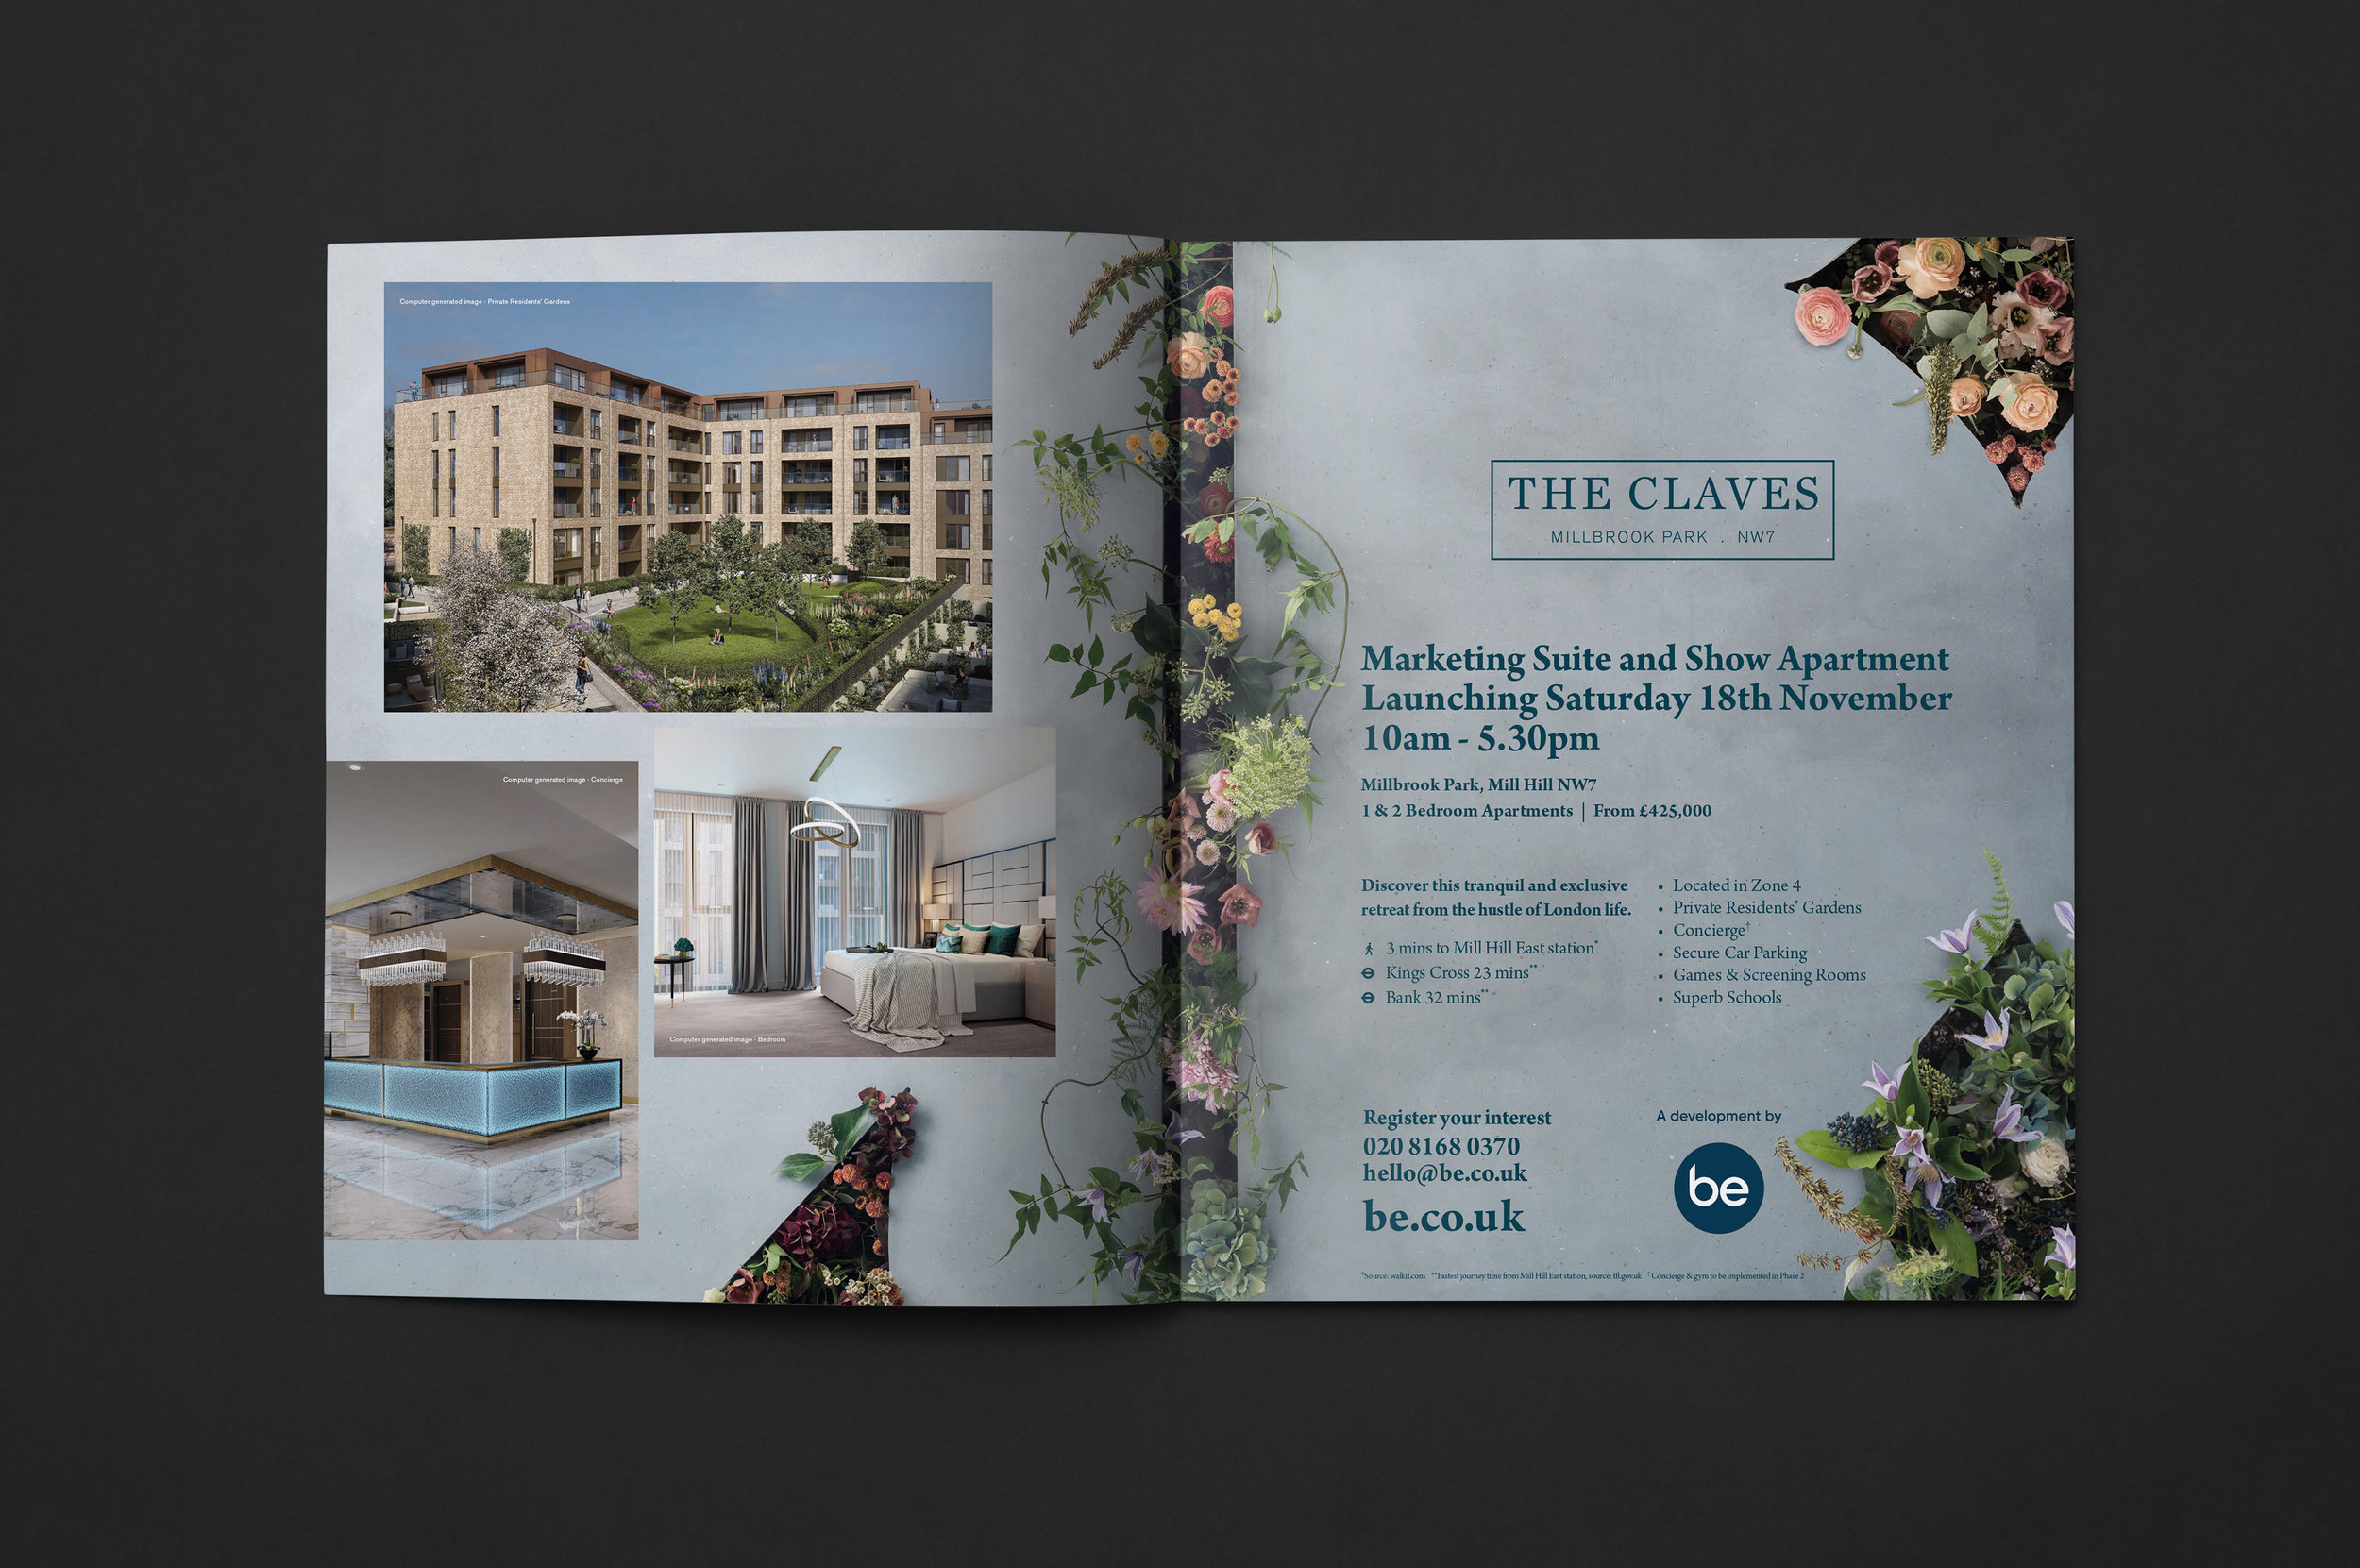 onebigcompany-design-london-art-direction-property-marketing-advert-the-claves-1.jpg